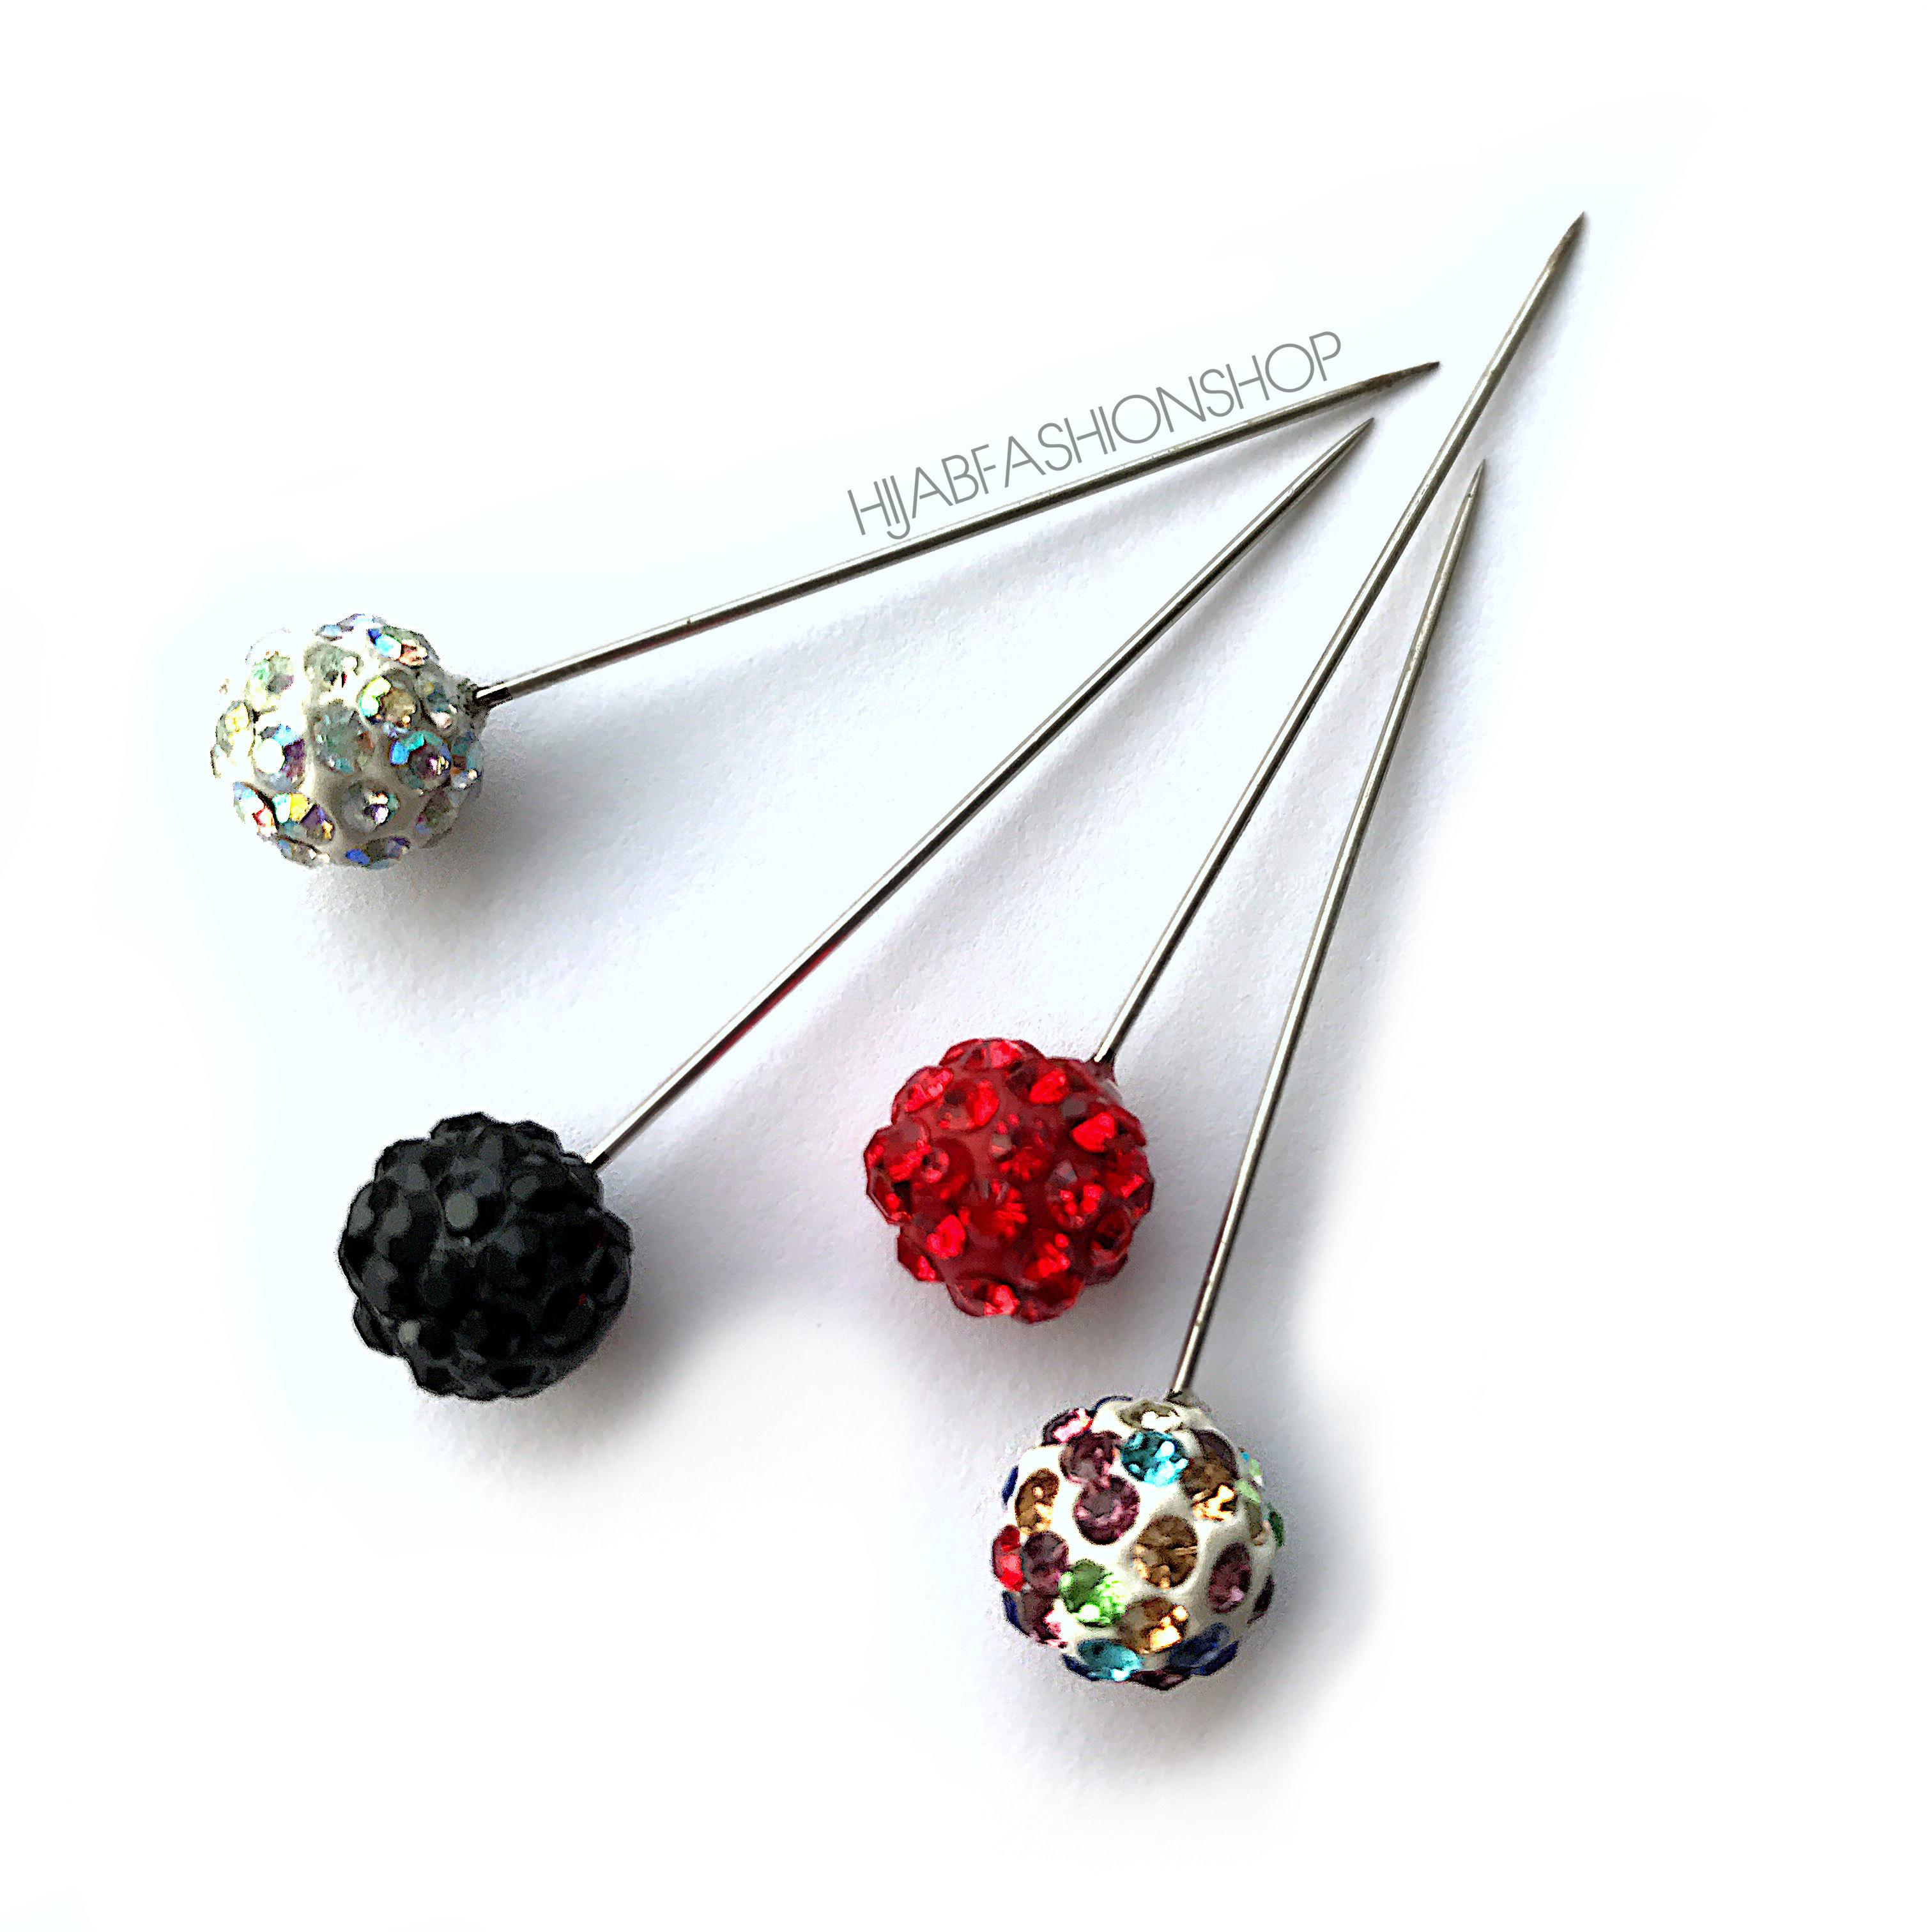 4 shamballa crystal hijab pins in variety of colours